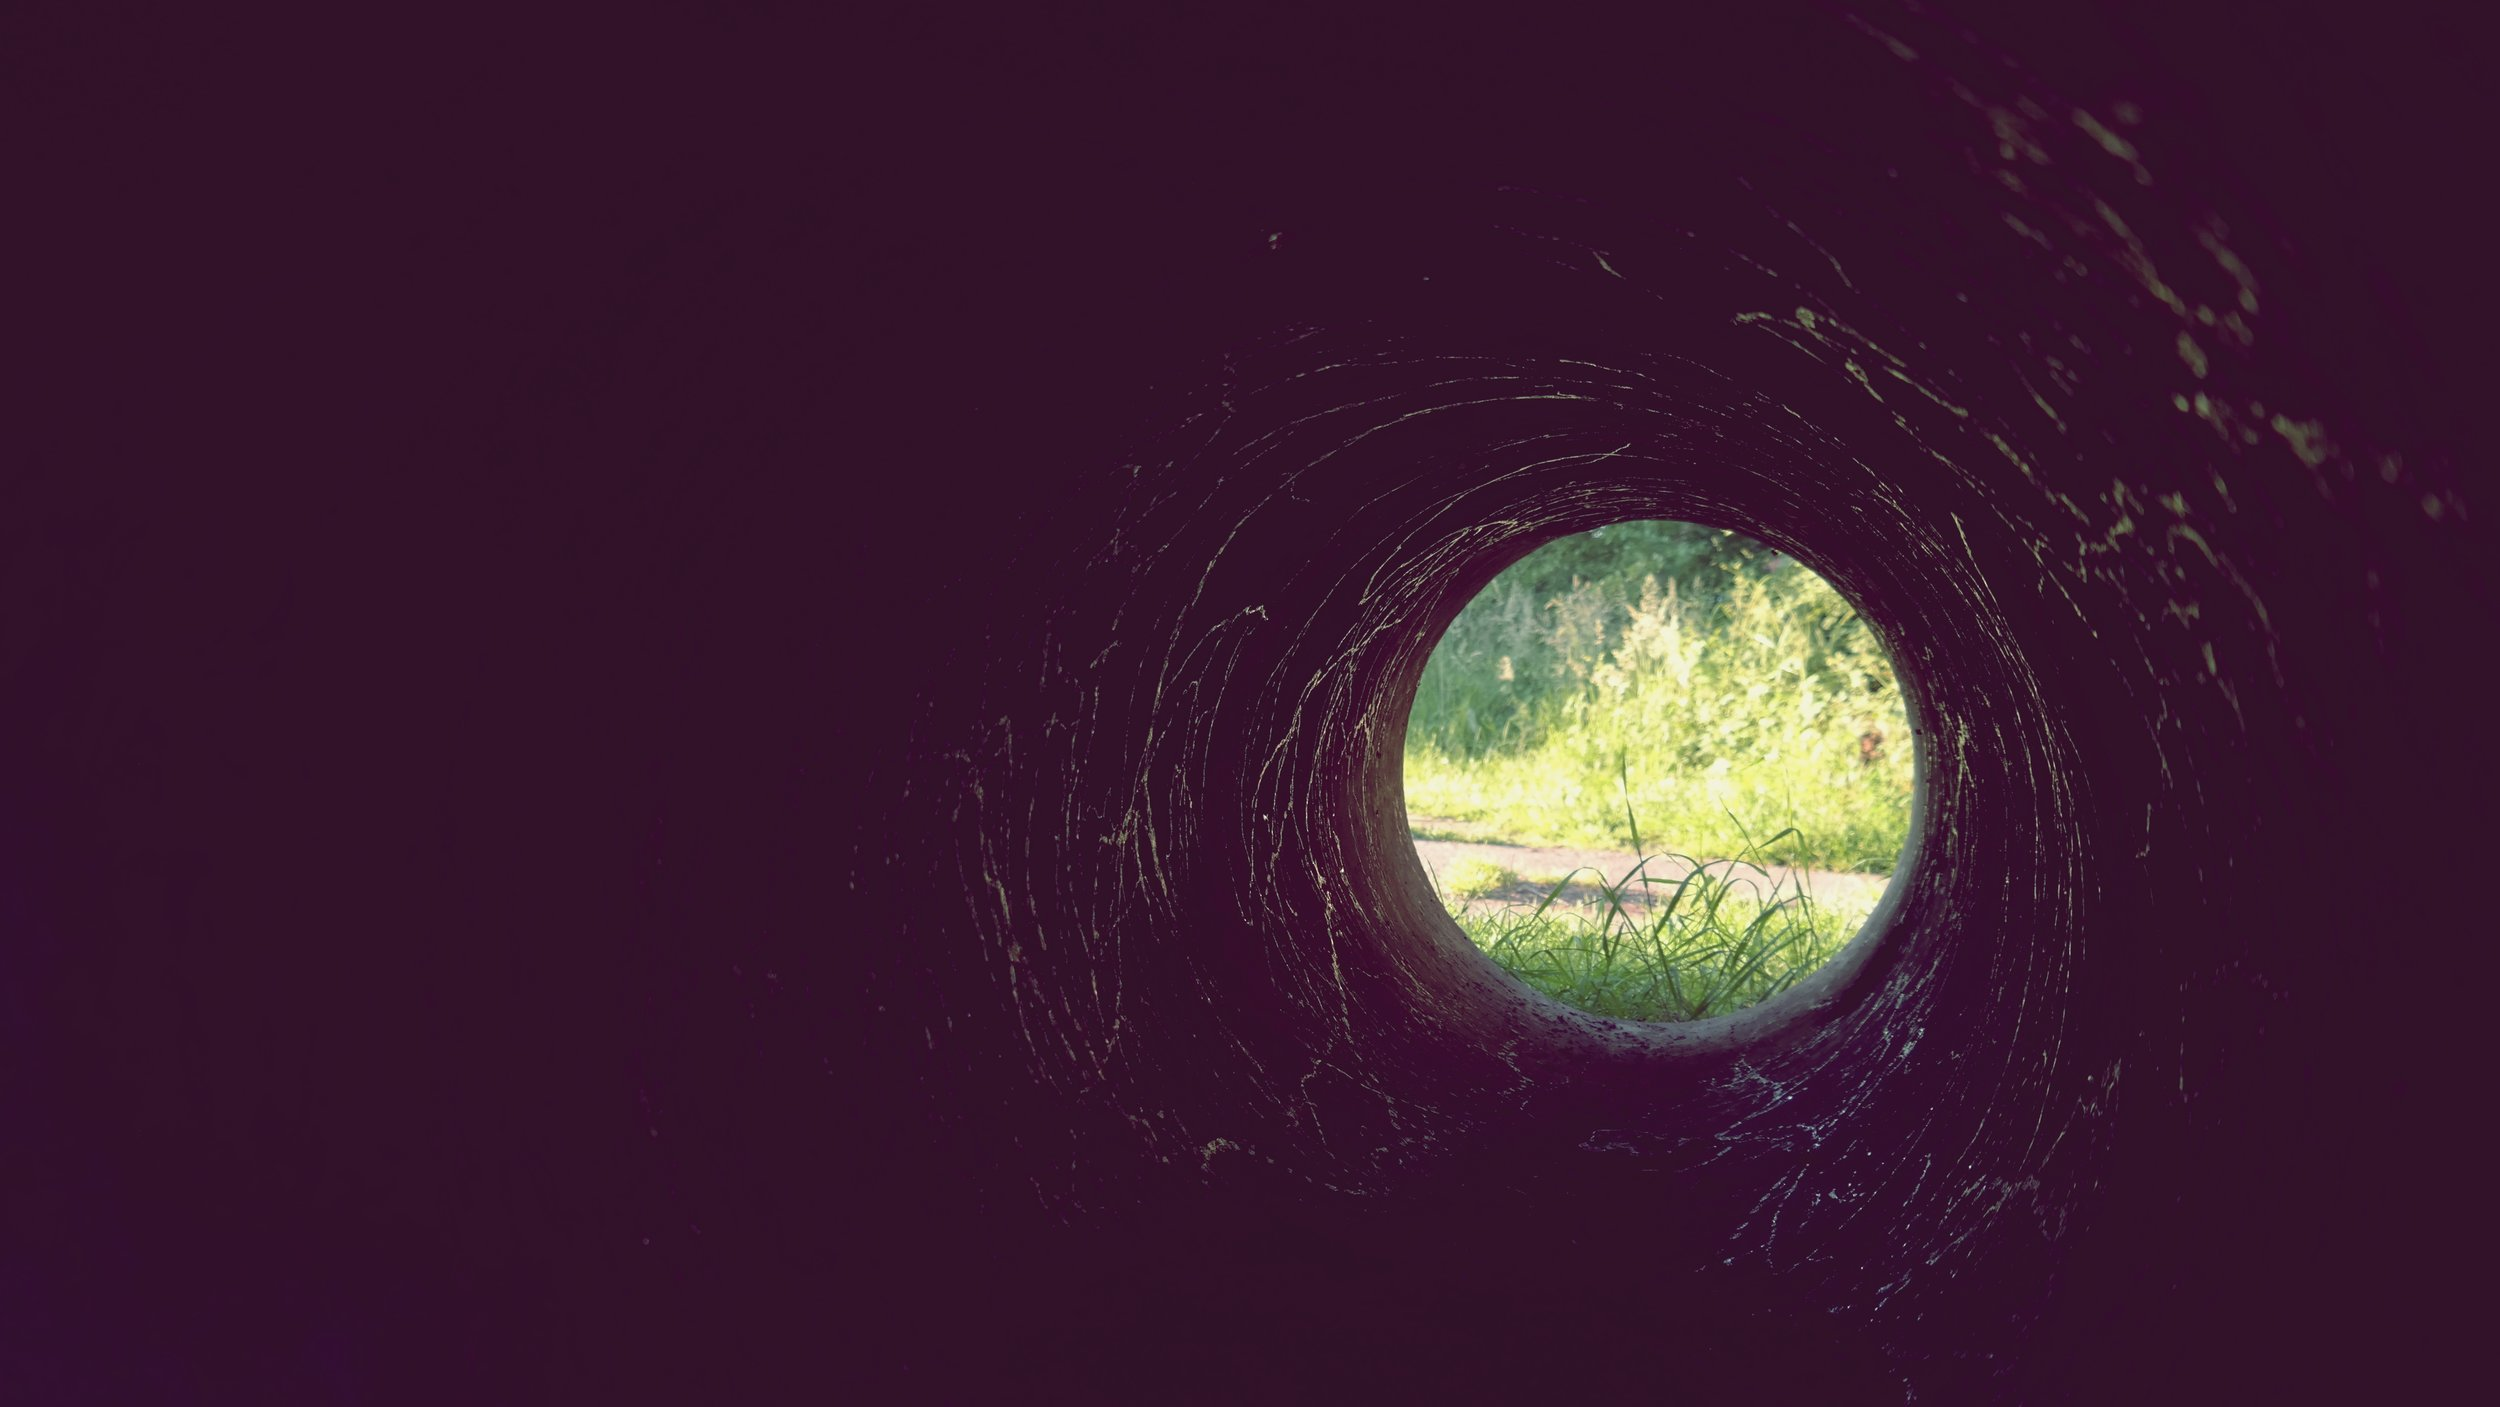 There is hope and light at the end of the tunnel... -